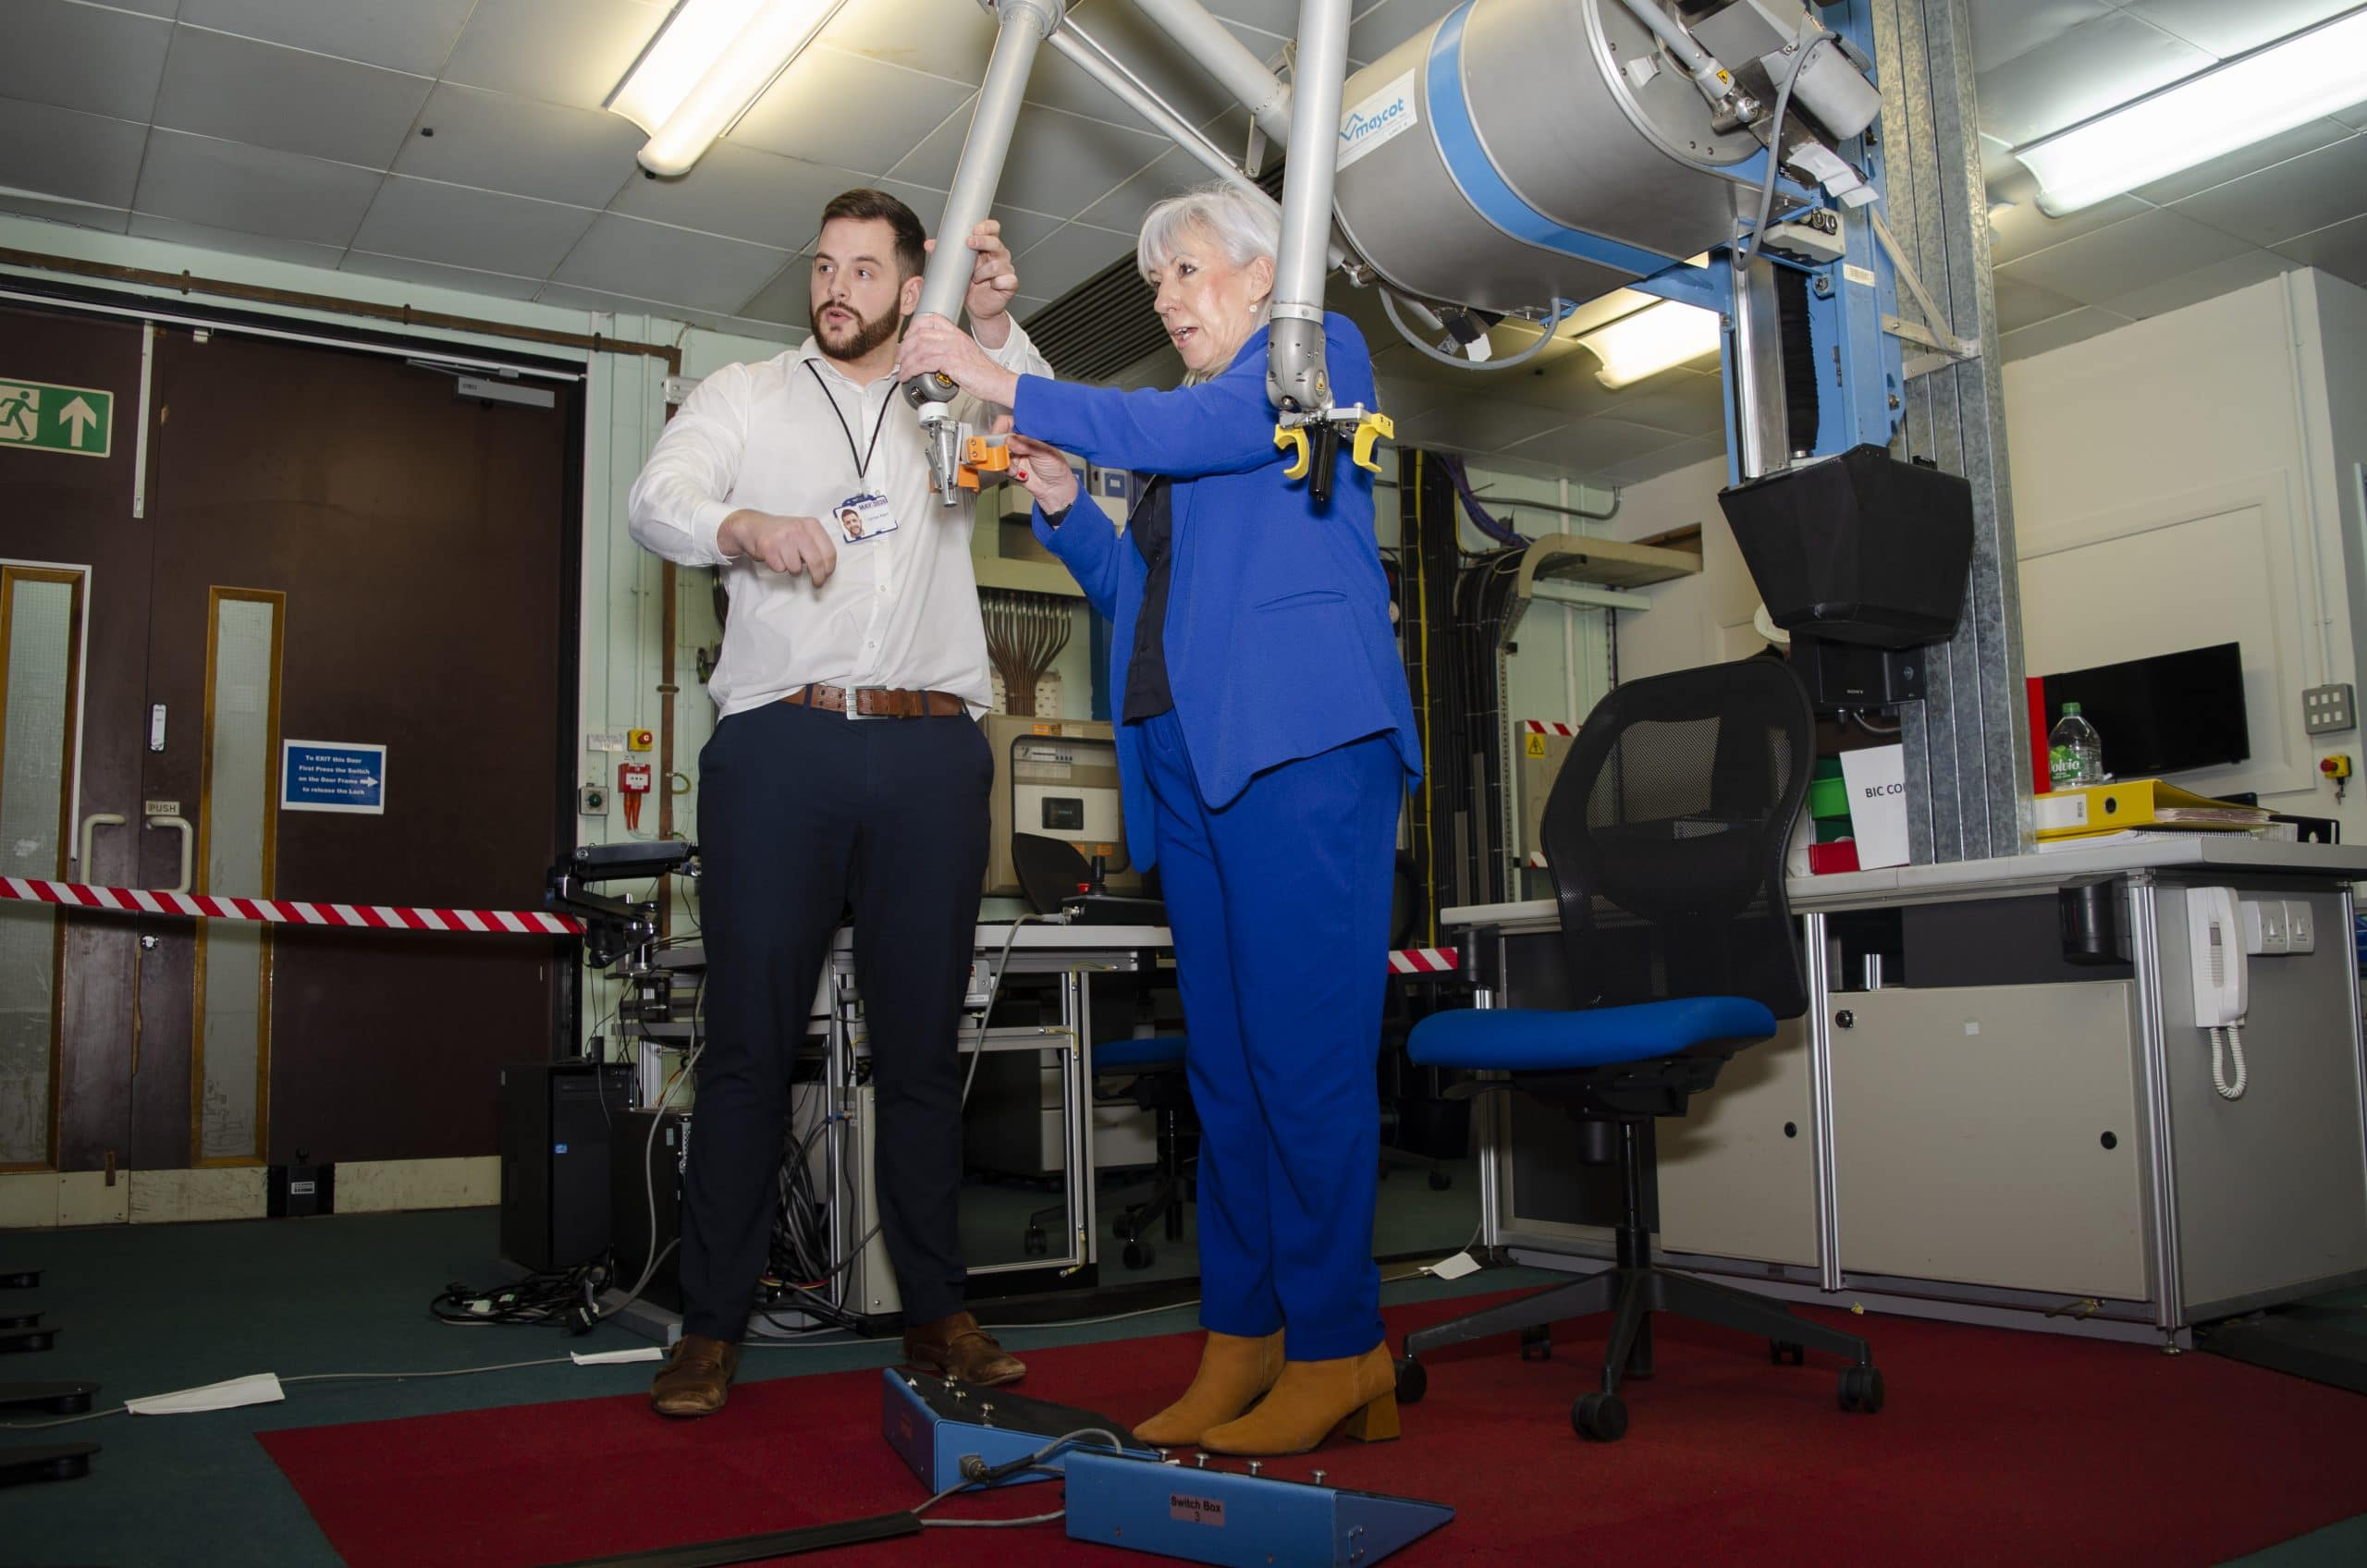 New Science Minister Amanda Solloway MP at CCFE for first major visit